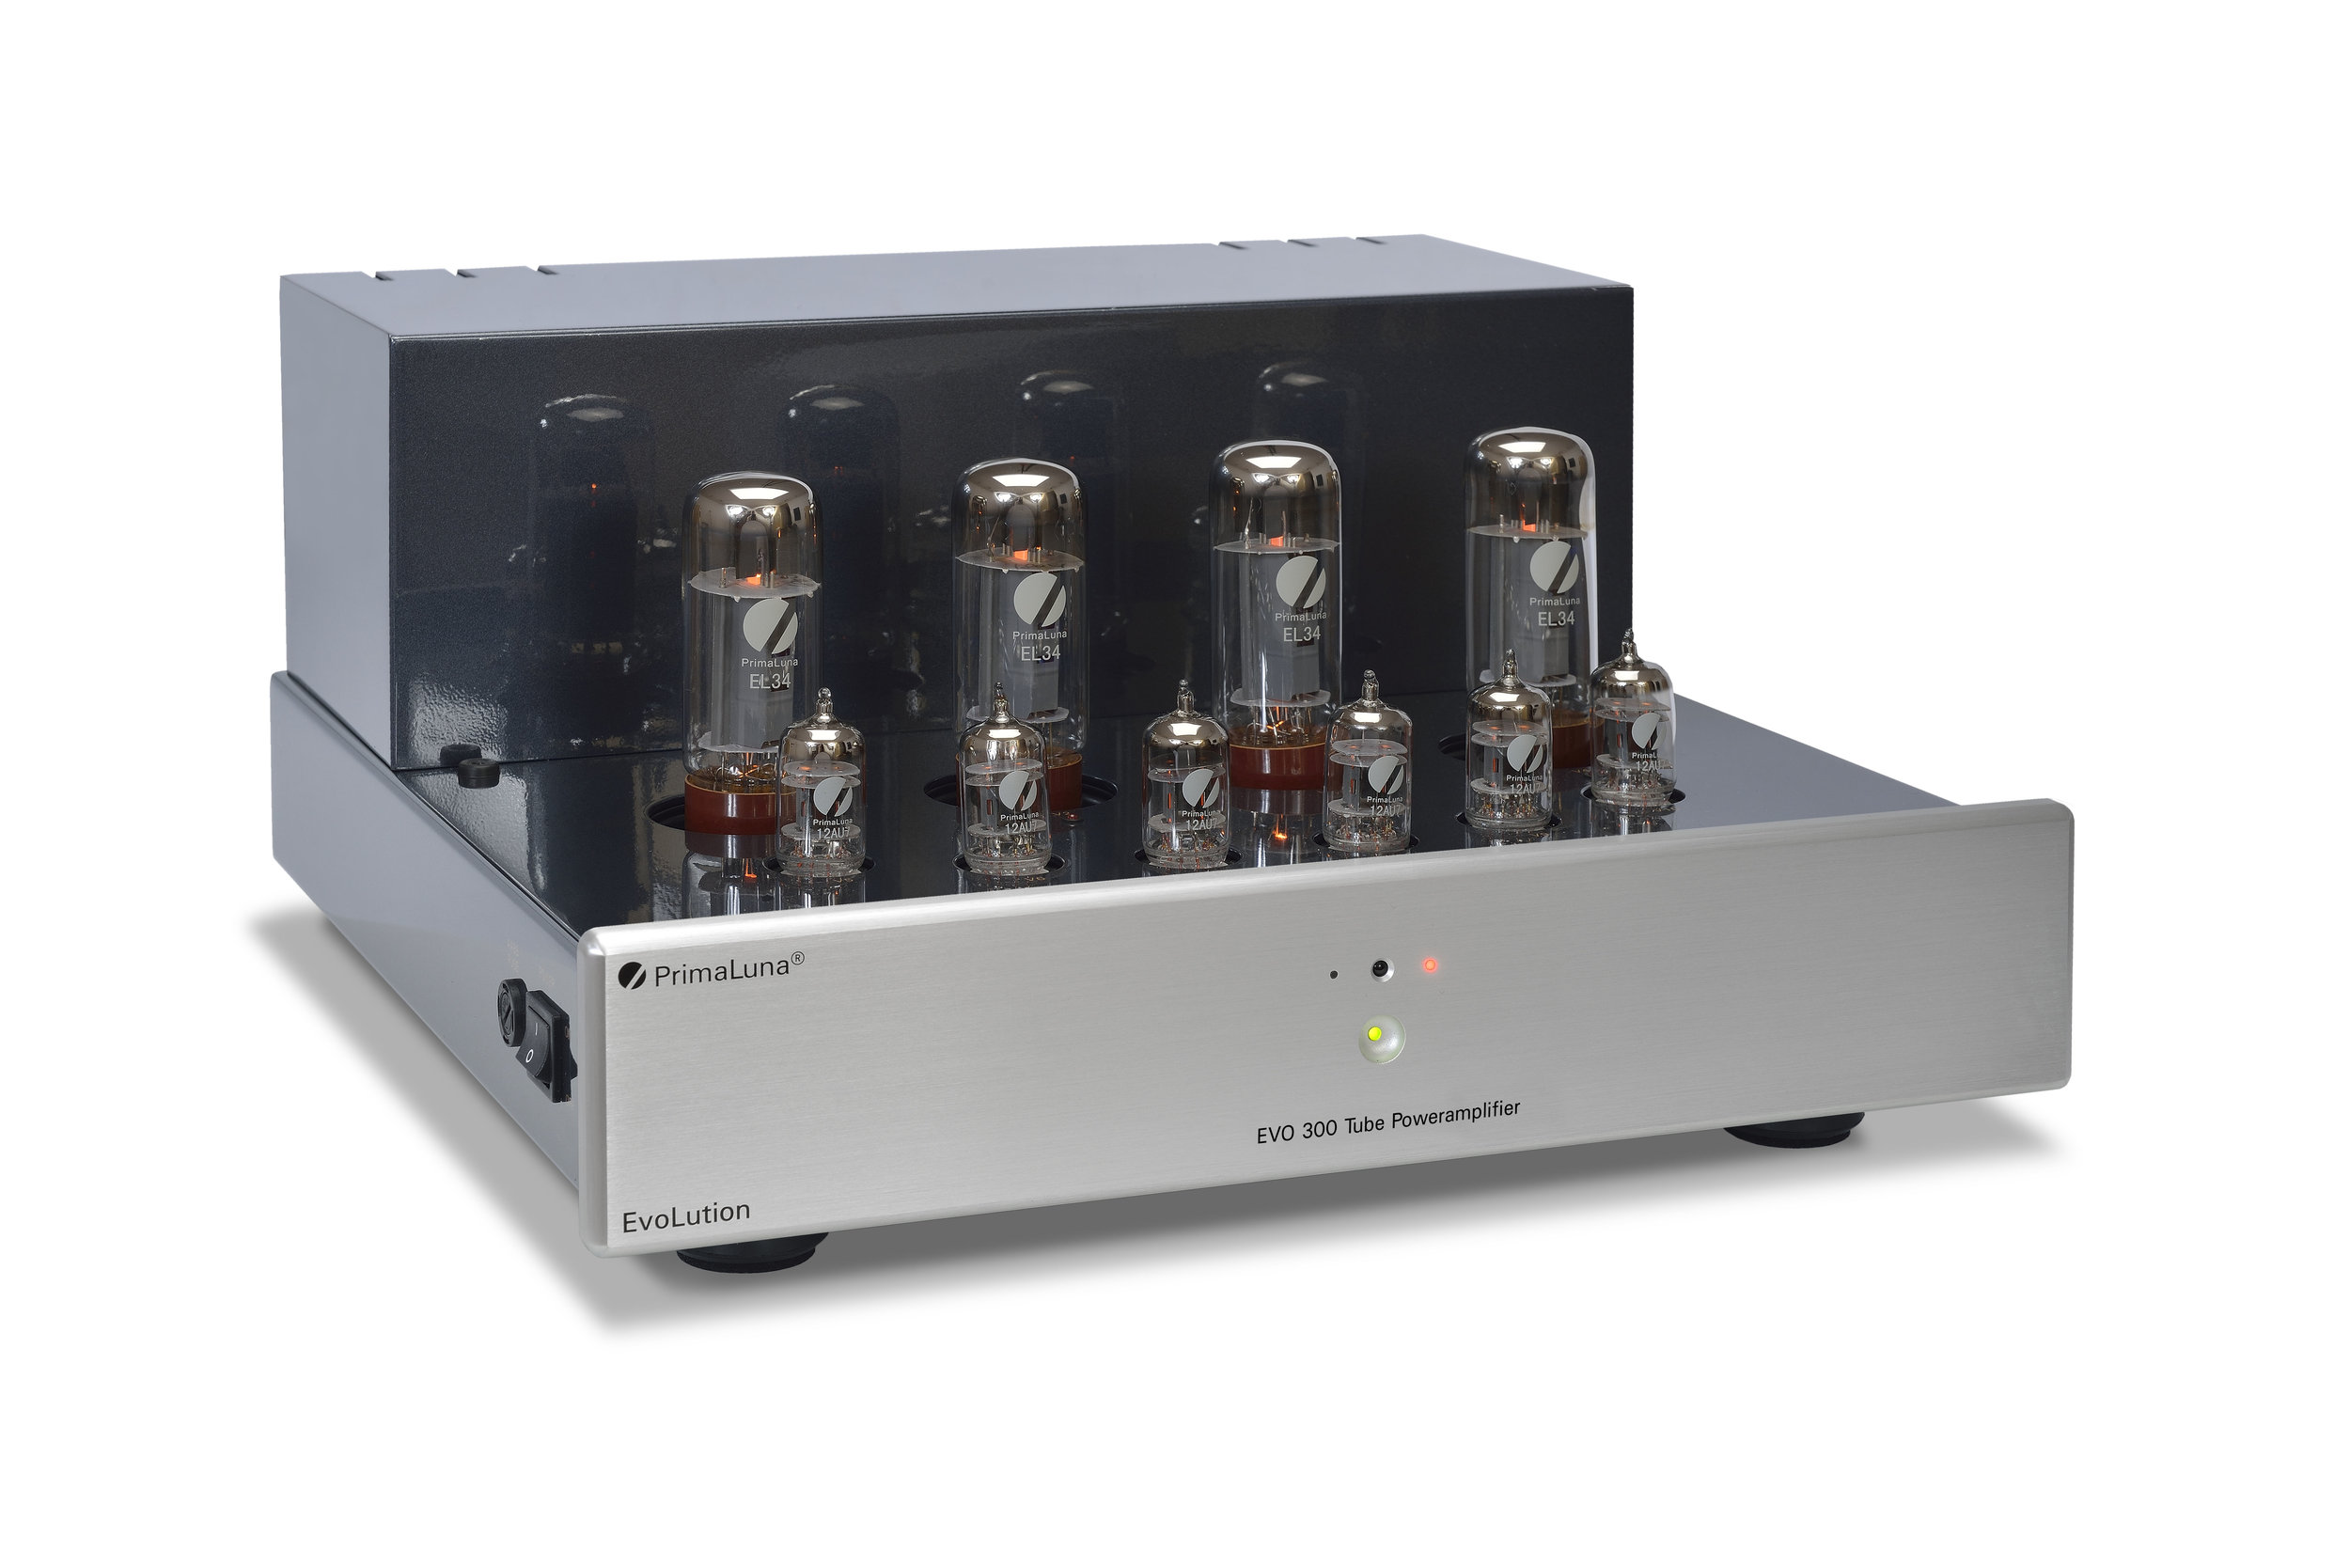 036b - PrimaLuna Evo 300 Tube Poweramplifier - silver - slanted - without cage - white background.jpg